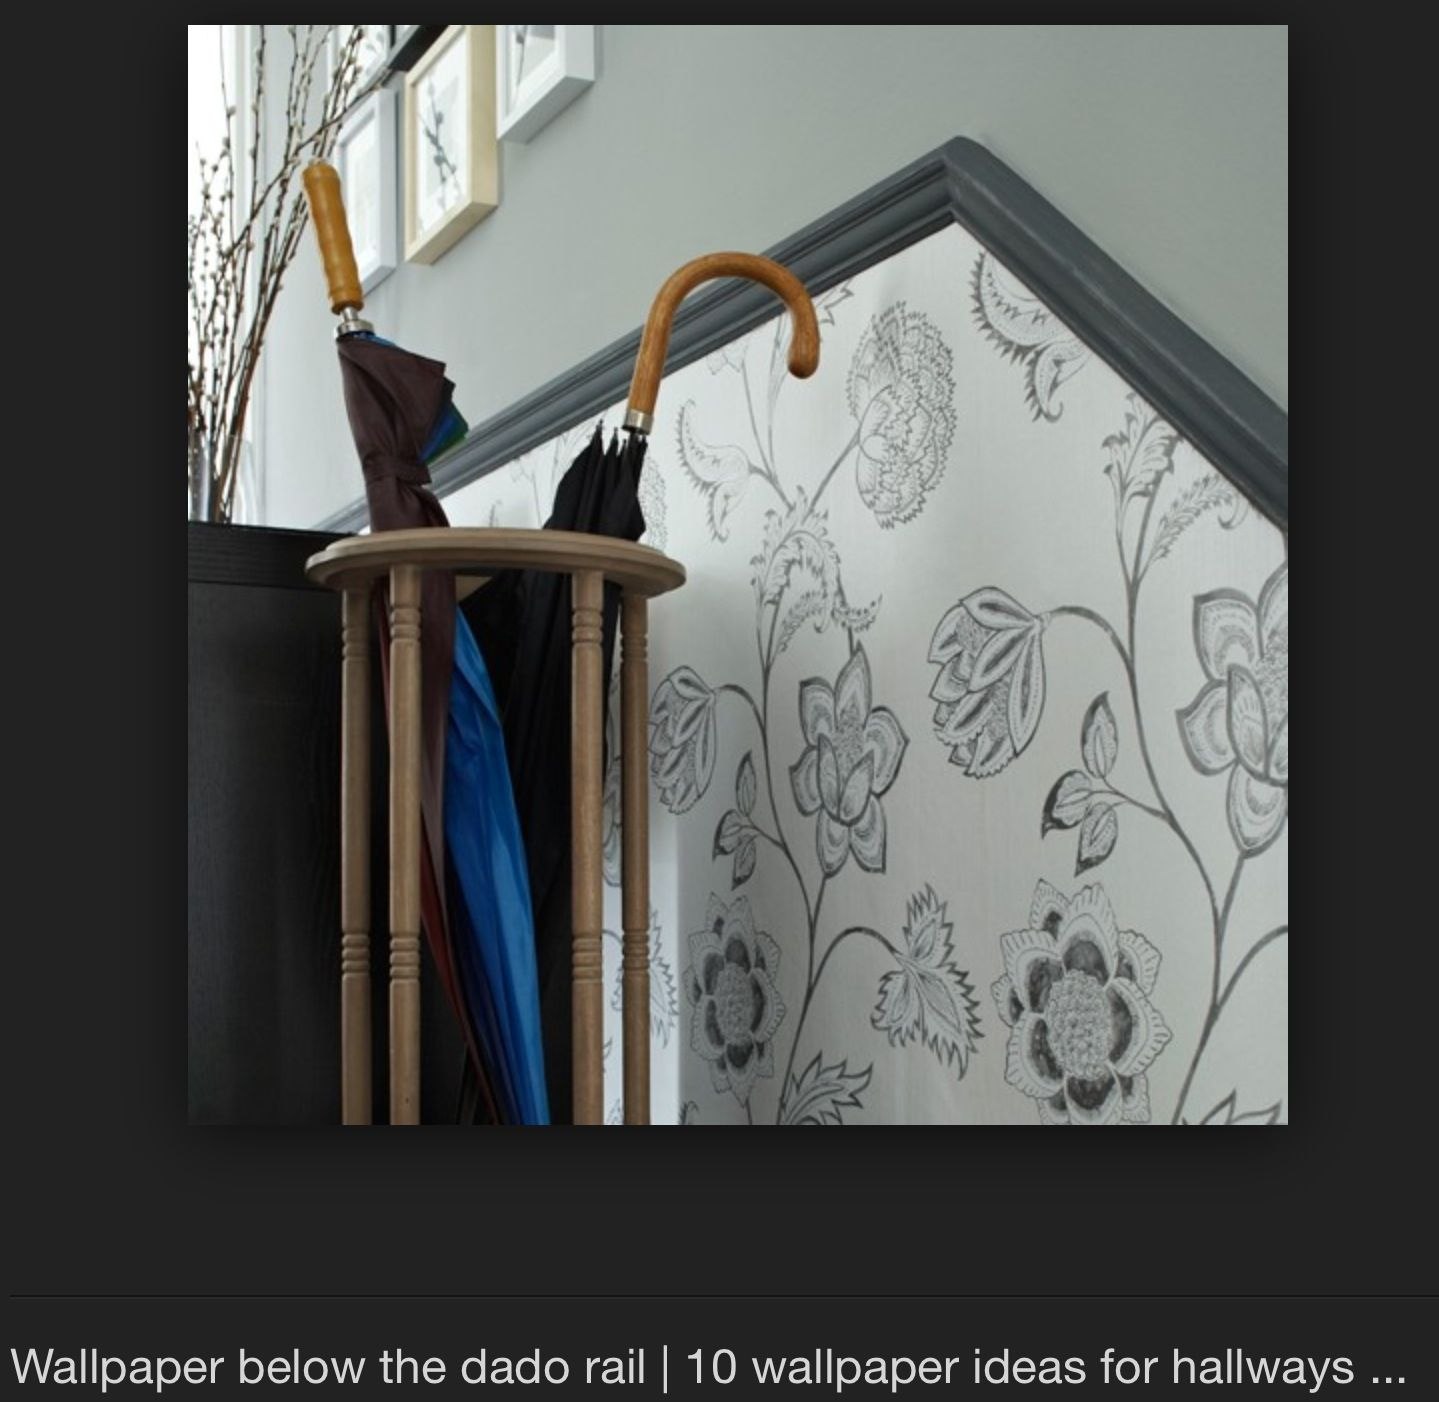 Wallpaper Below Dado Rail